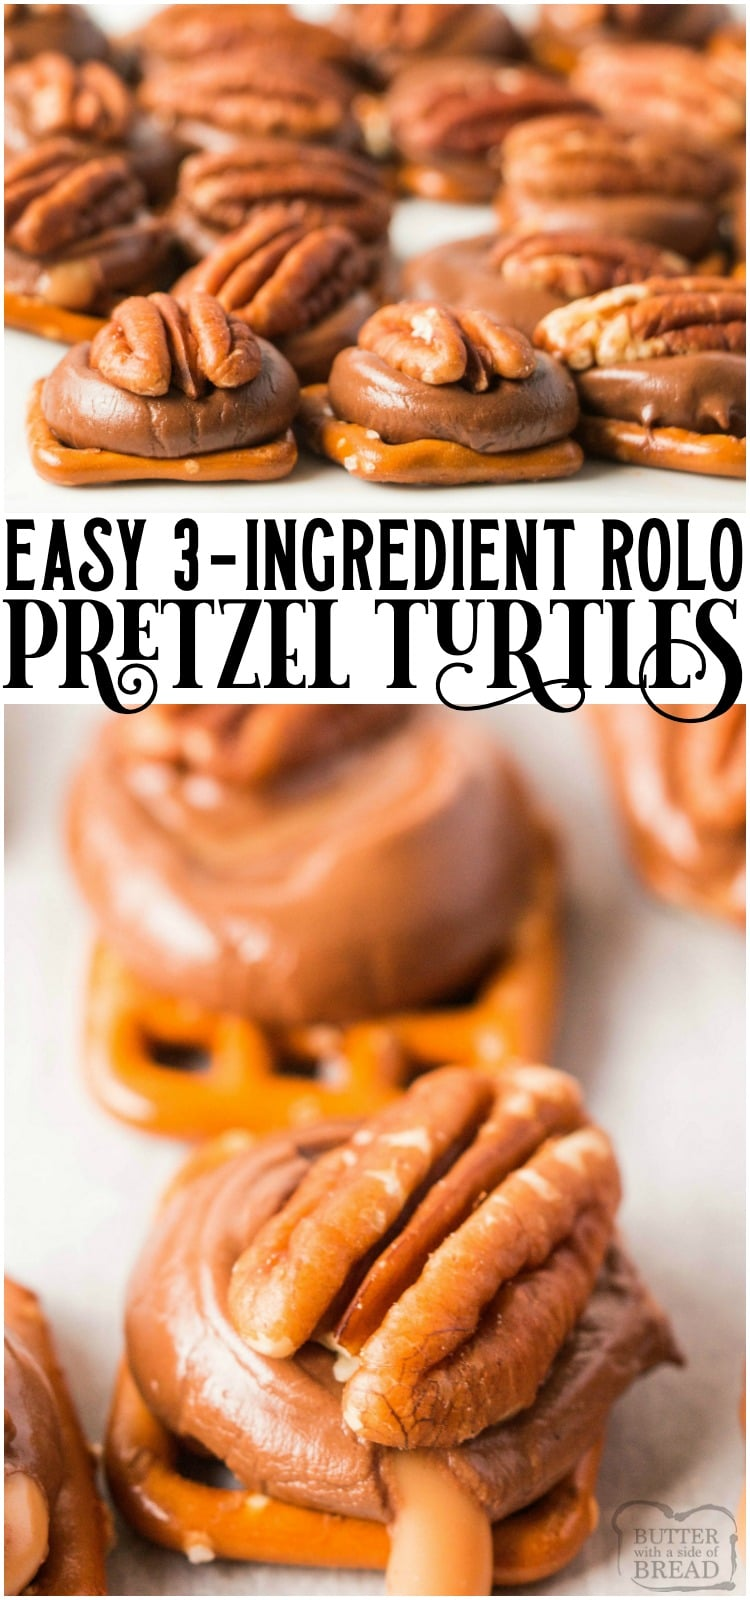 Rolo pretzel turtles are delicious salted caramel pretzel pecan bites that are made in minutes and are perfect holiday treats! #rolo #turtle #pretzels #candy #caramel #saltysweet #Christmascandy #dessert #recipe from BUTTER WITH A SIDE OF BREAD